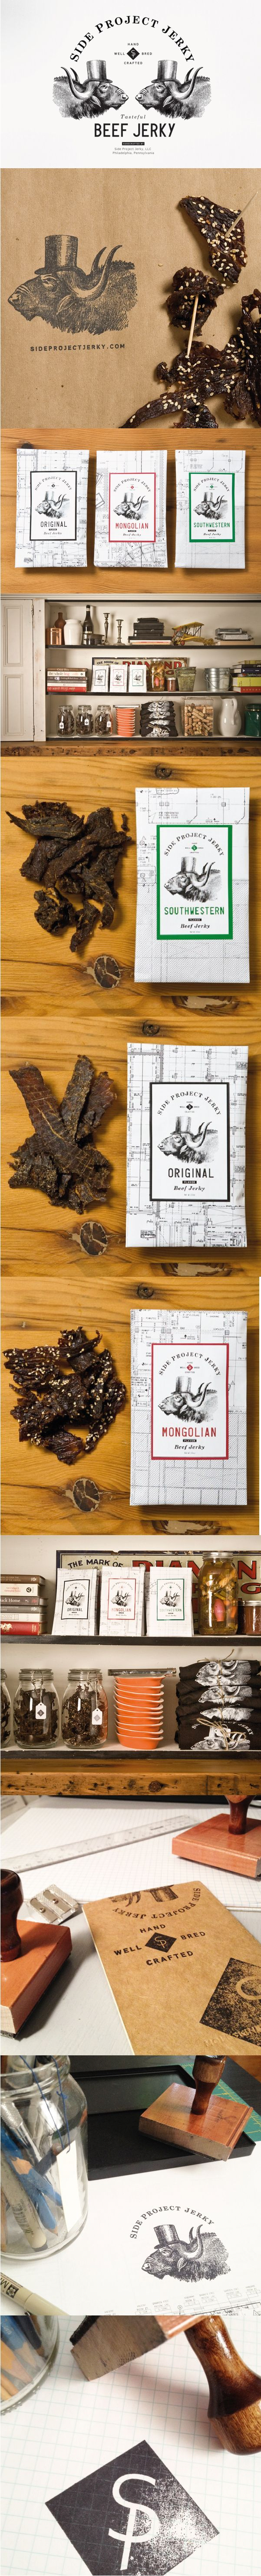 Best Brand Identity Design on the Internet, Side Project Jerky #branding #brandidentity #identitydesign